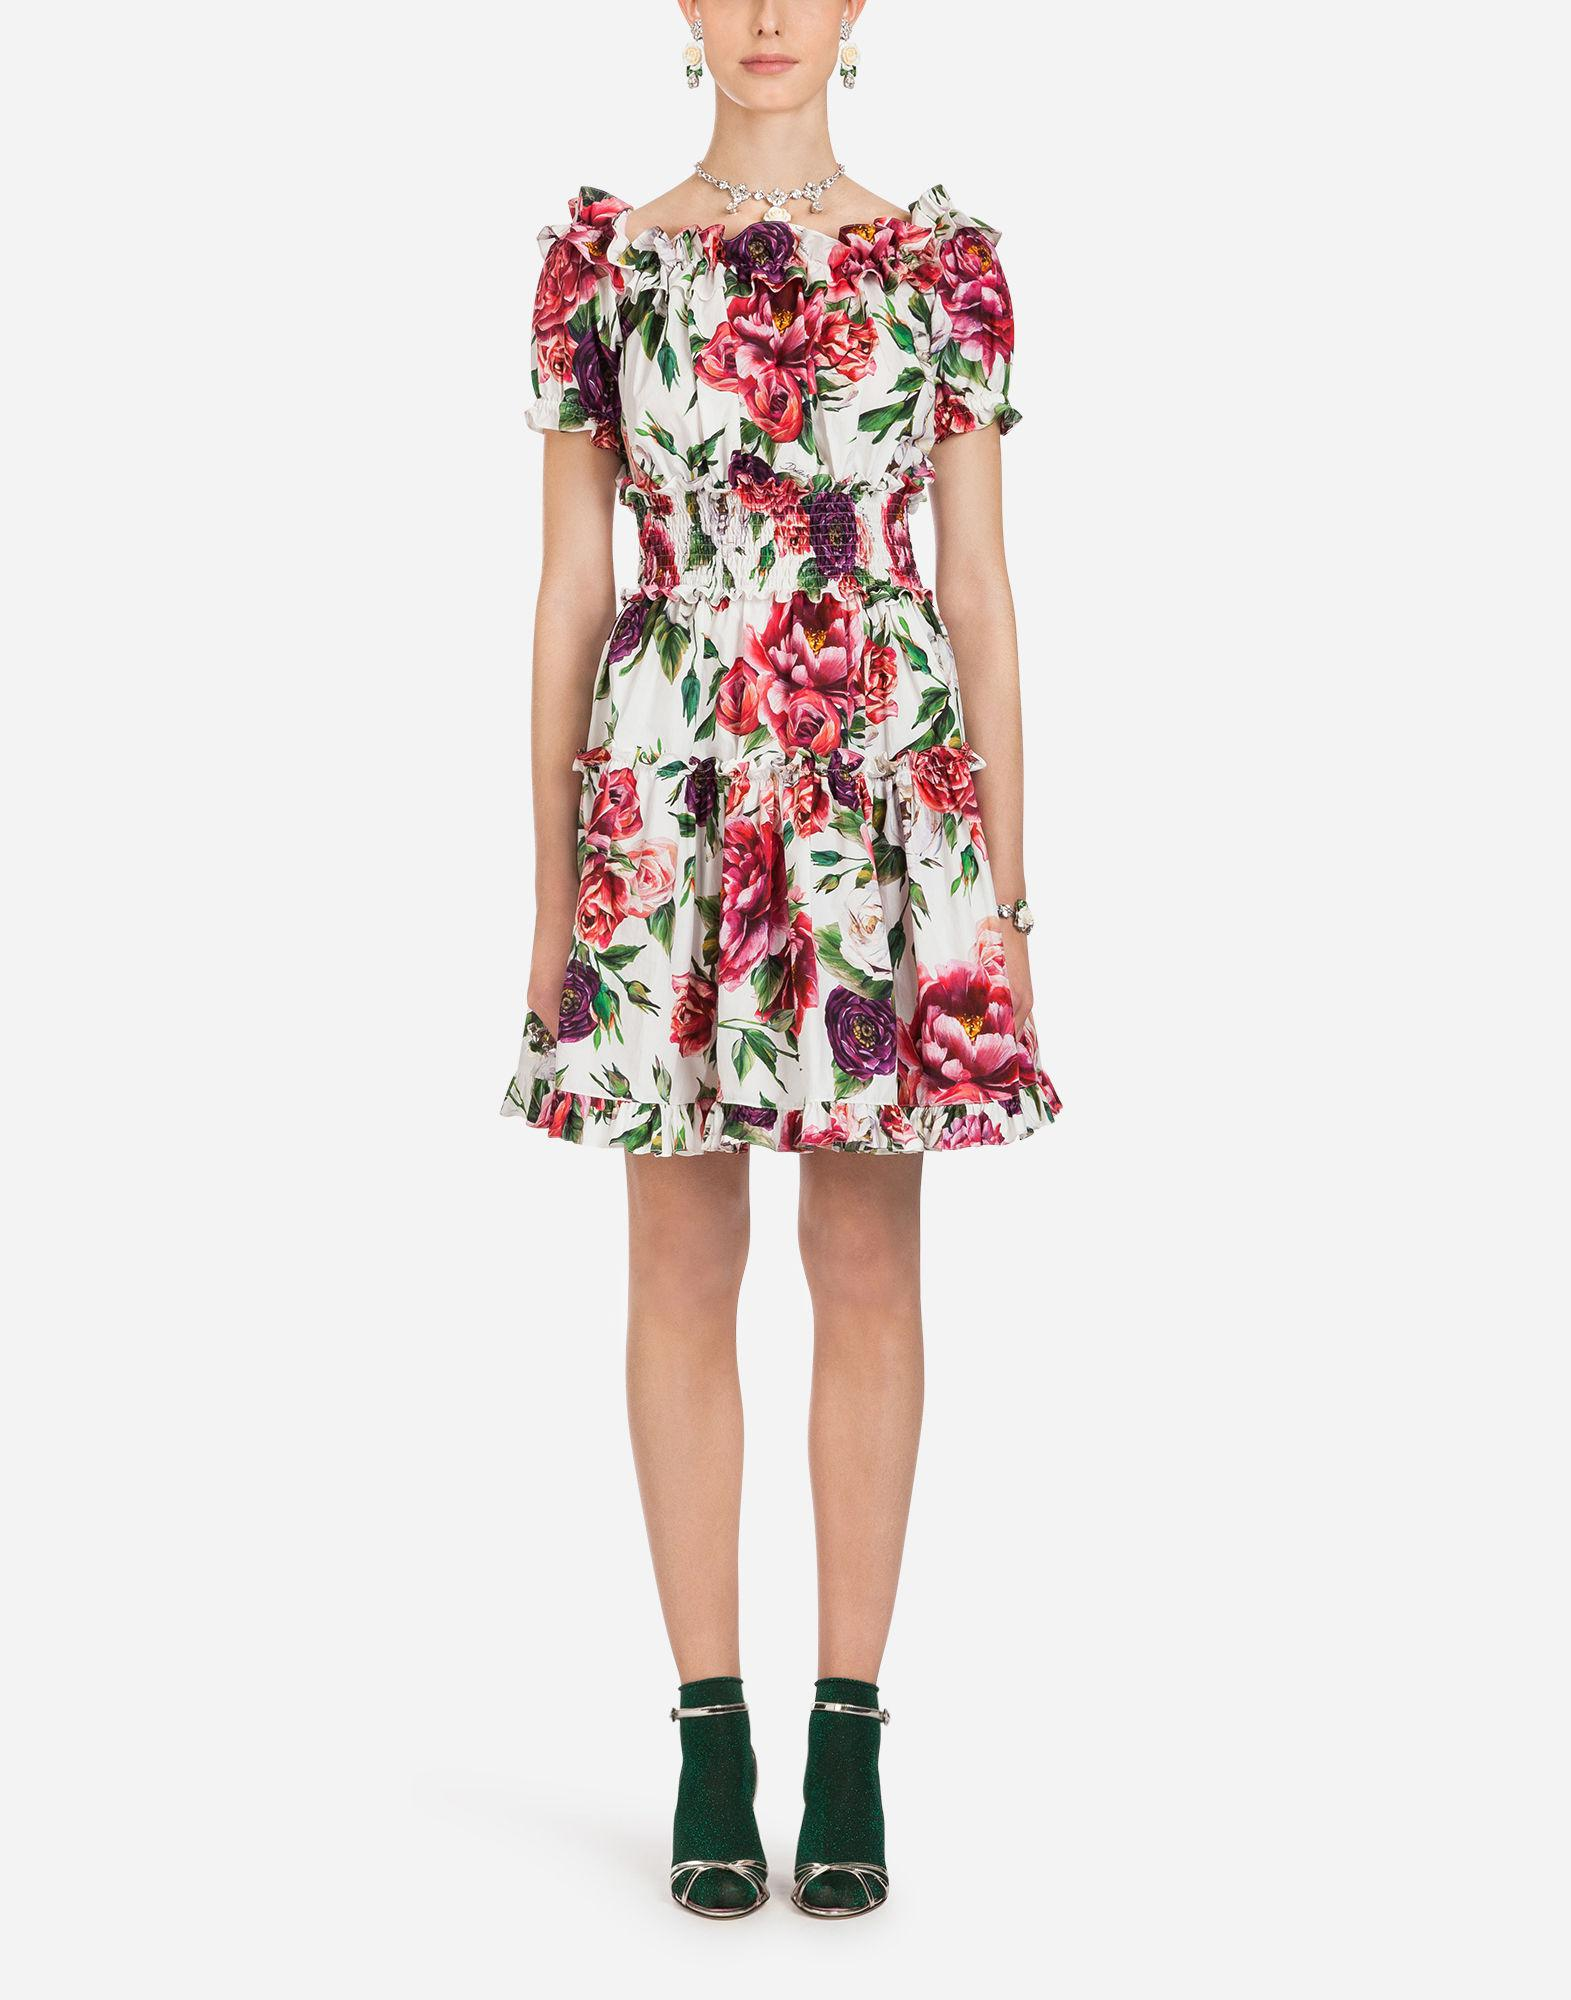 b4ef97f1d71bd Dolce   Gabbana Cotton Dress In Peony Print in Red - Lyst